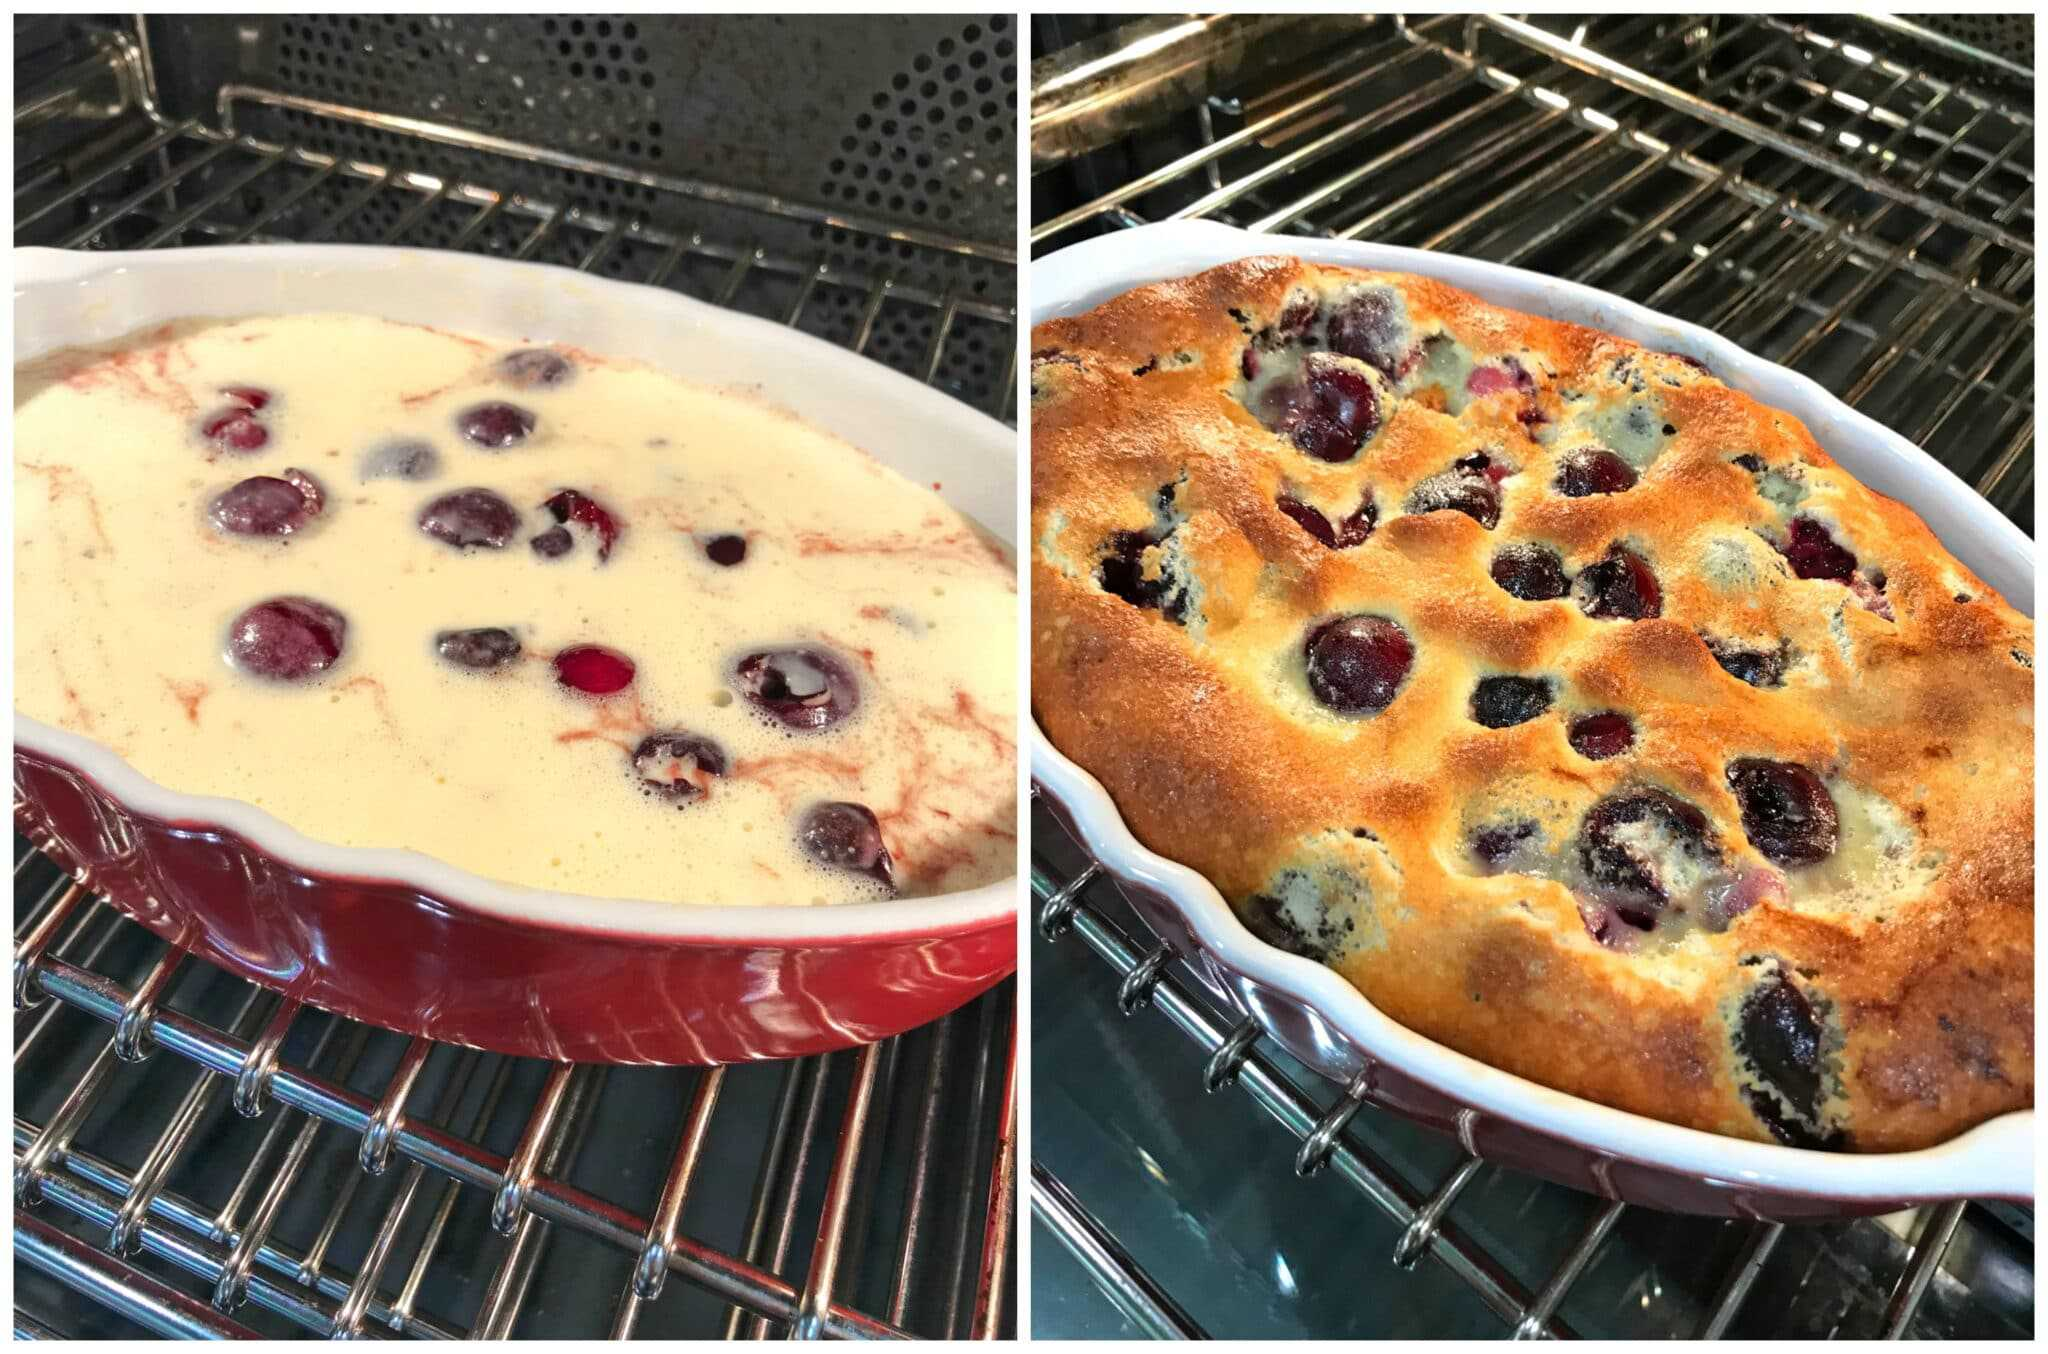 baking cherry clafoutis in oven